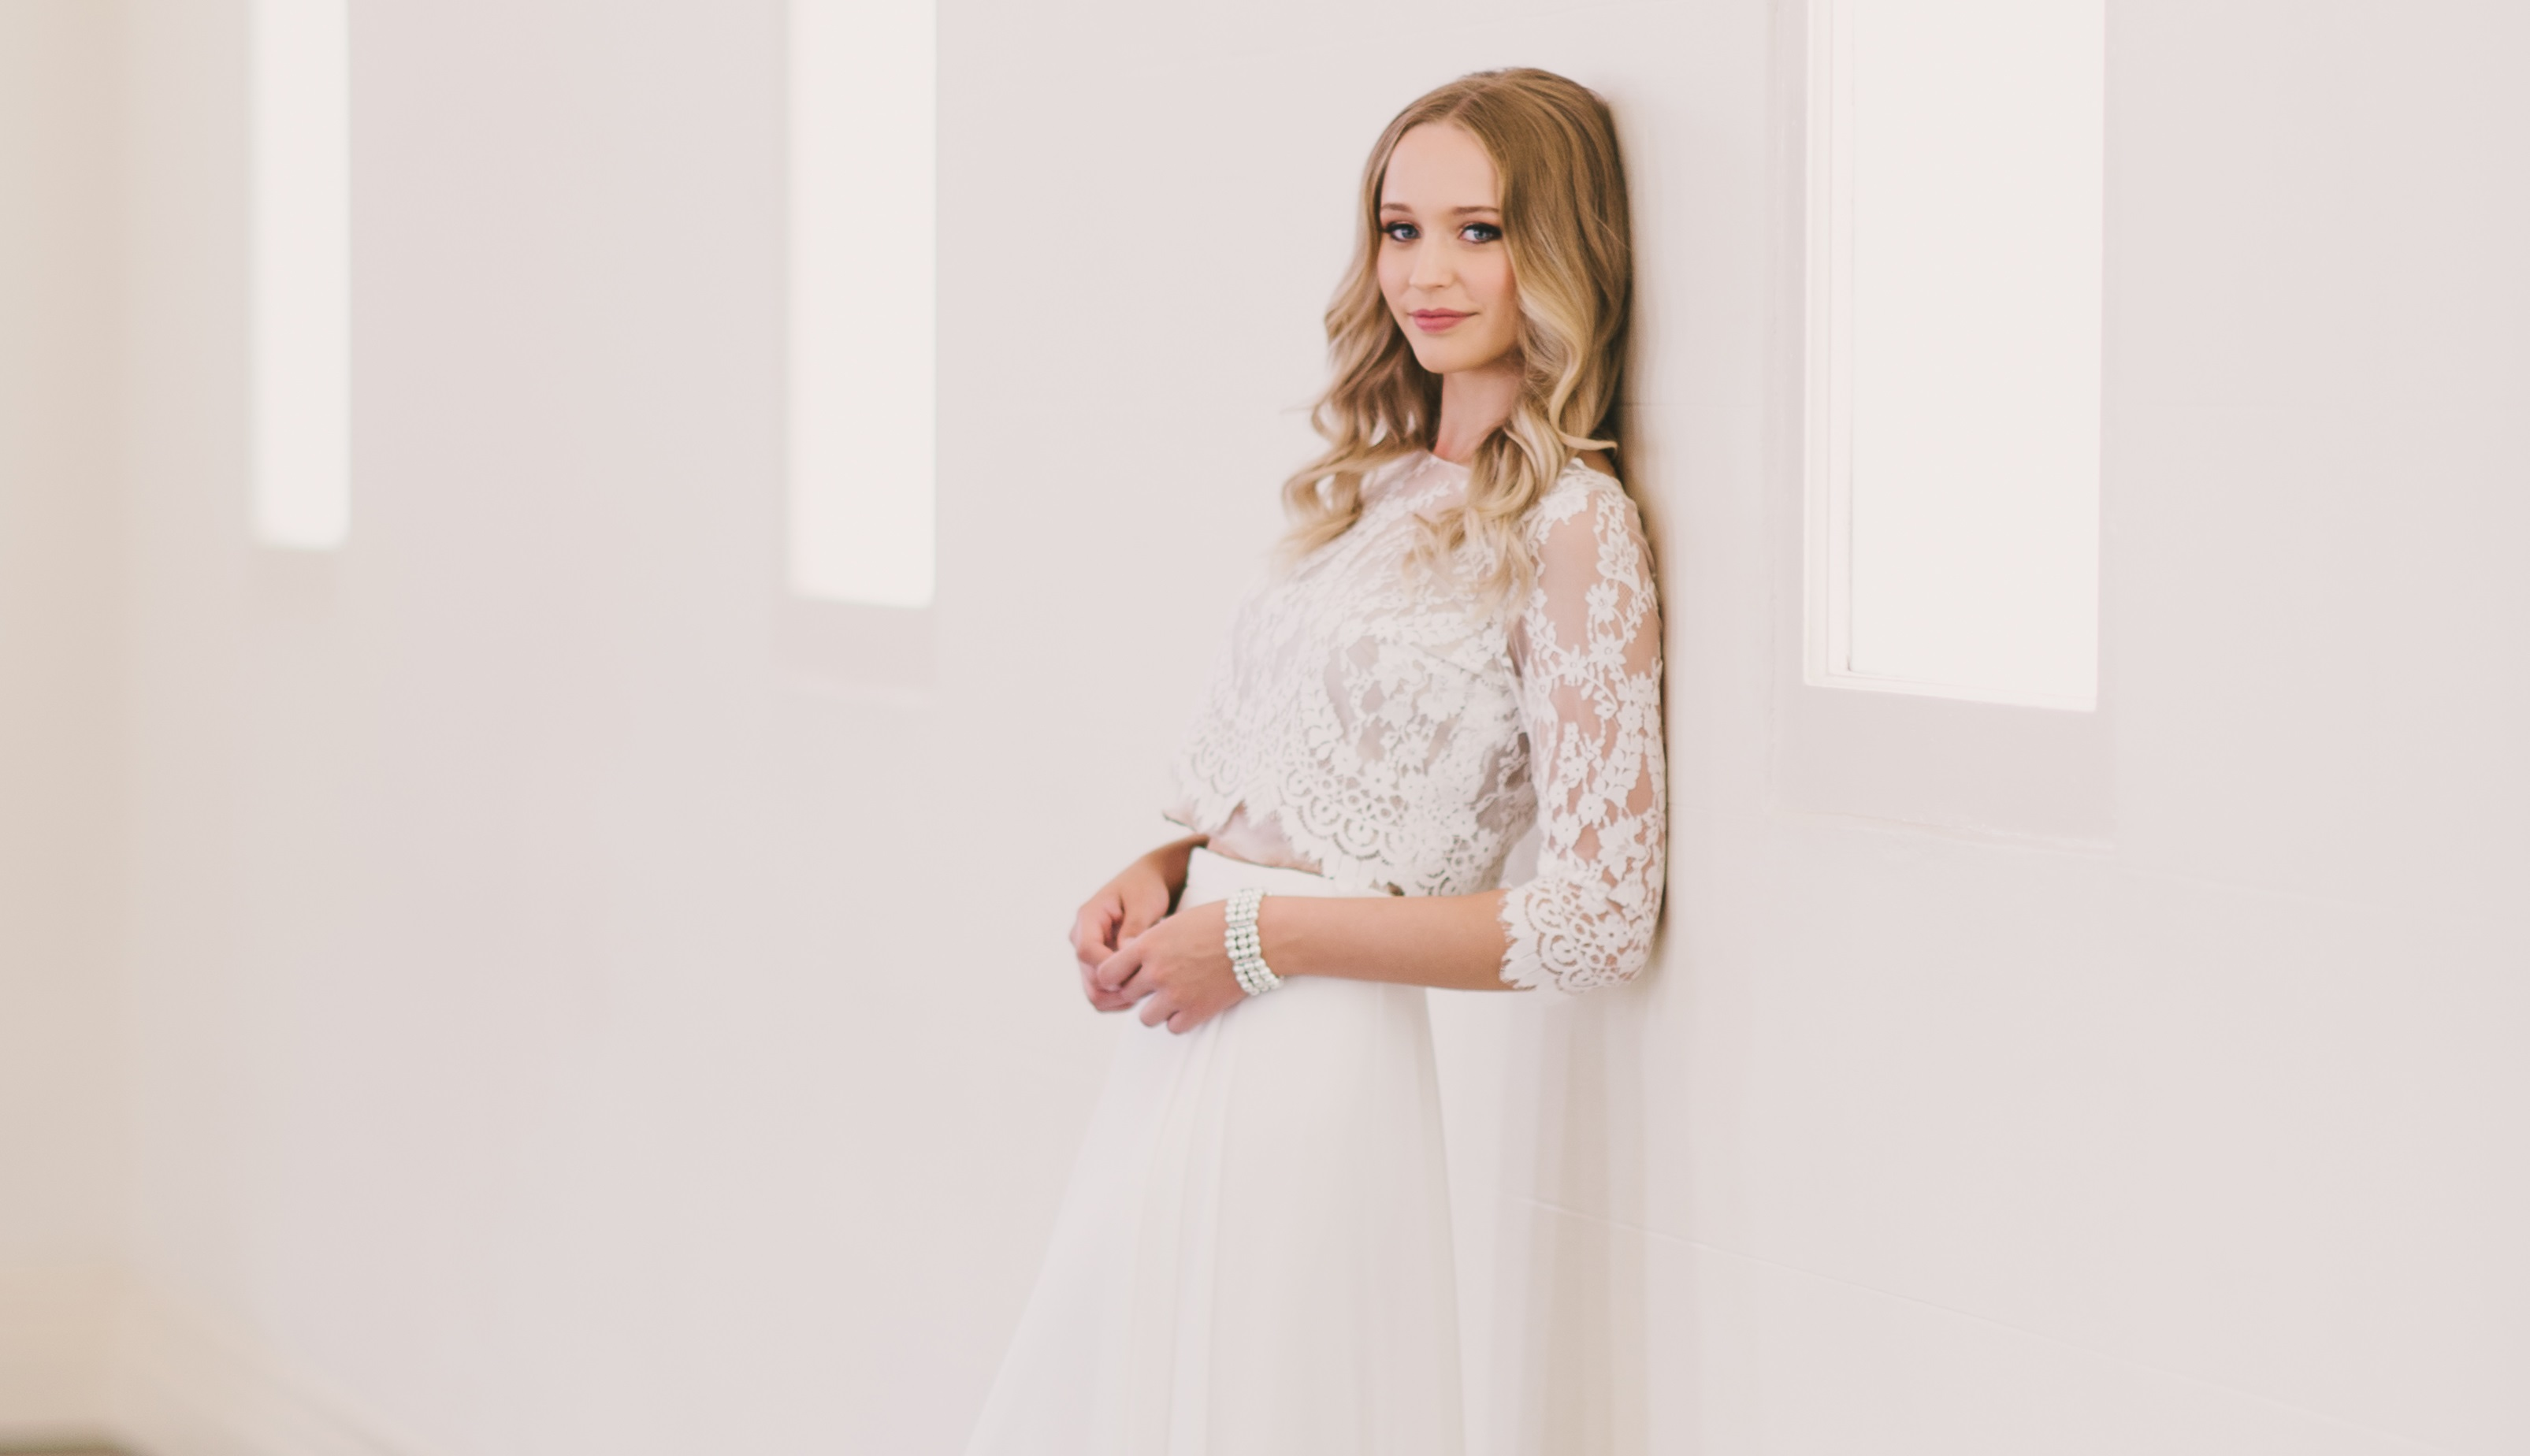 Stylish Brides Will Love The New Wendy Makin Bridal Designs For 2017 2018 Here S A Sneaky Preview Of Brand Ready To Wear Collection